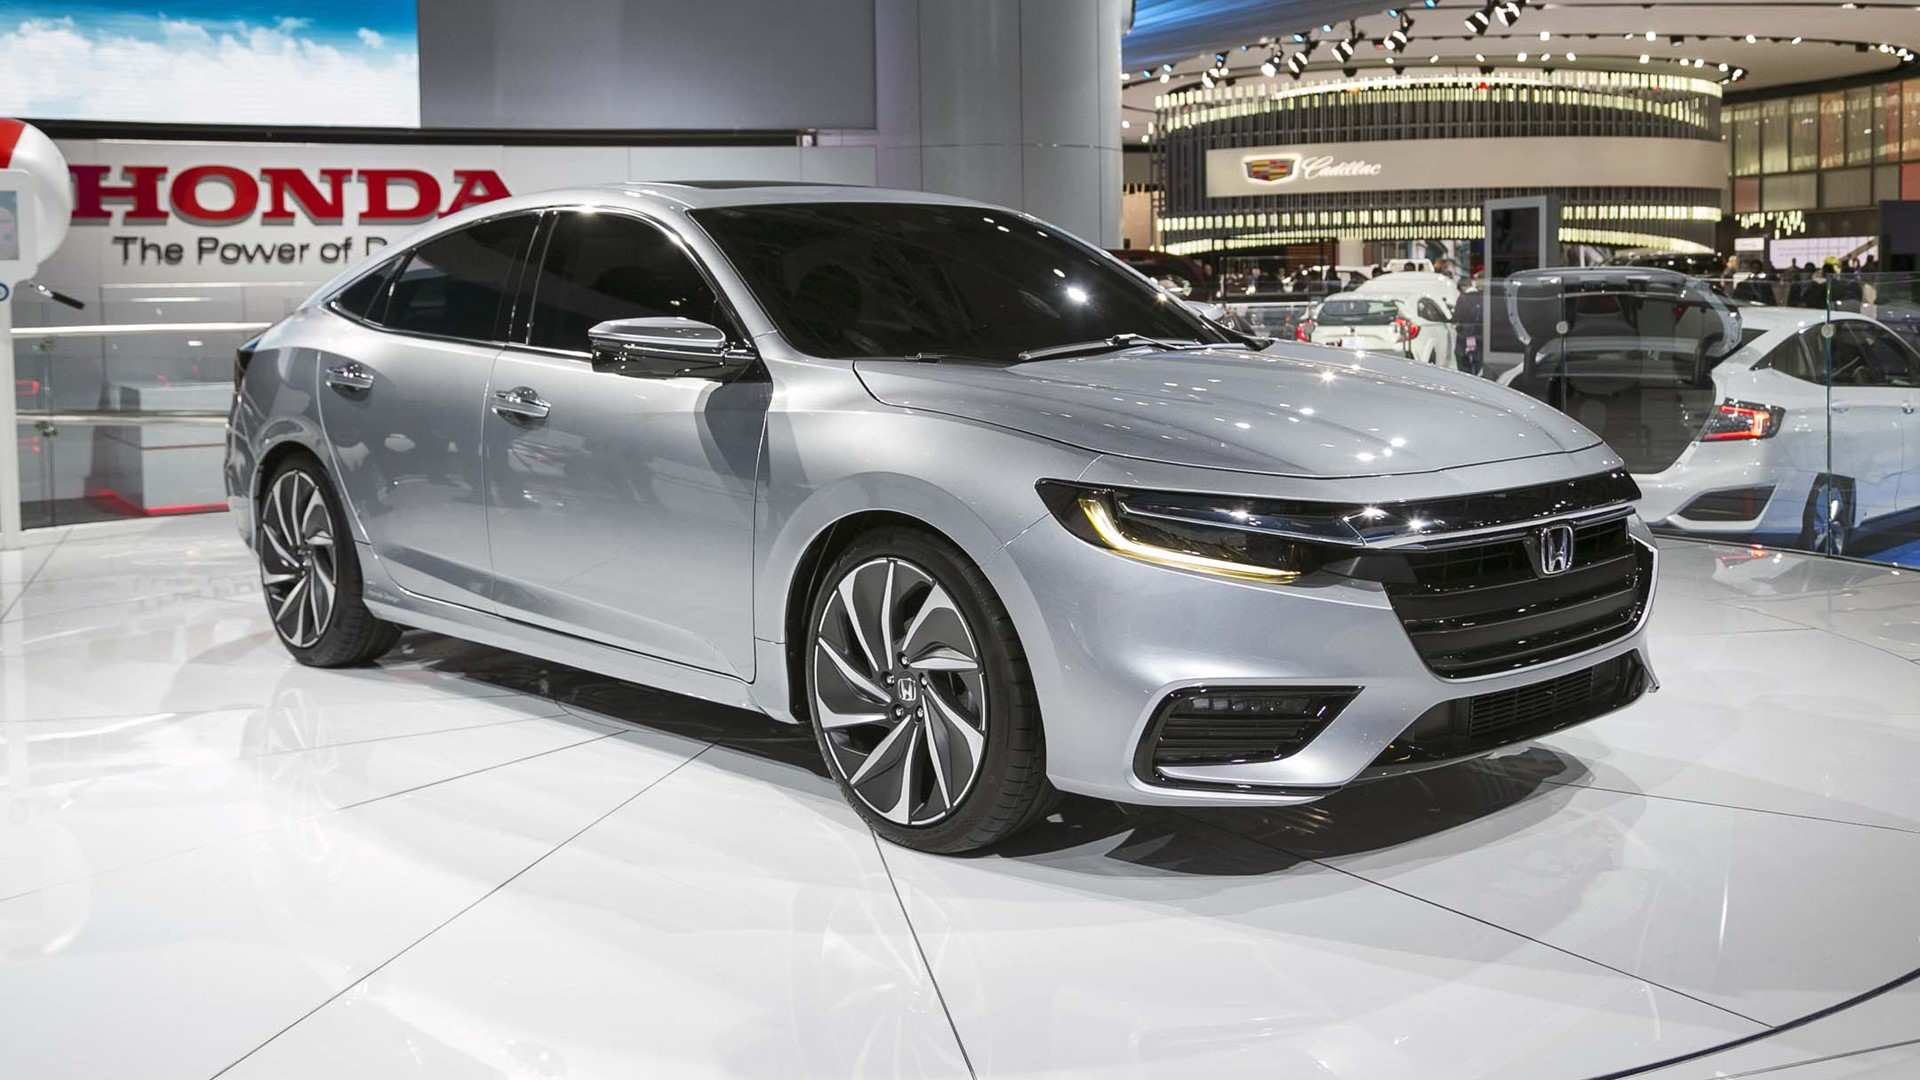 24 Gallery of New Honda Accord Hybrid 2019 Price And Release Date Redesign and Concept for New Honda Accord Hybrid 2019 Price And Release Date